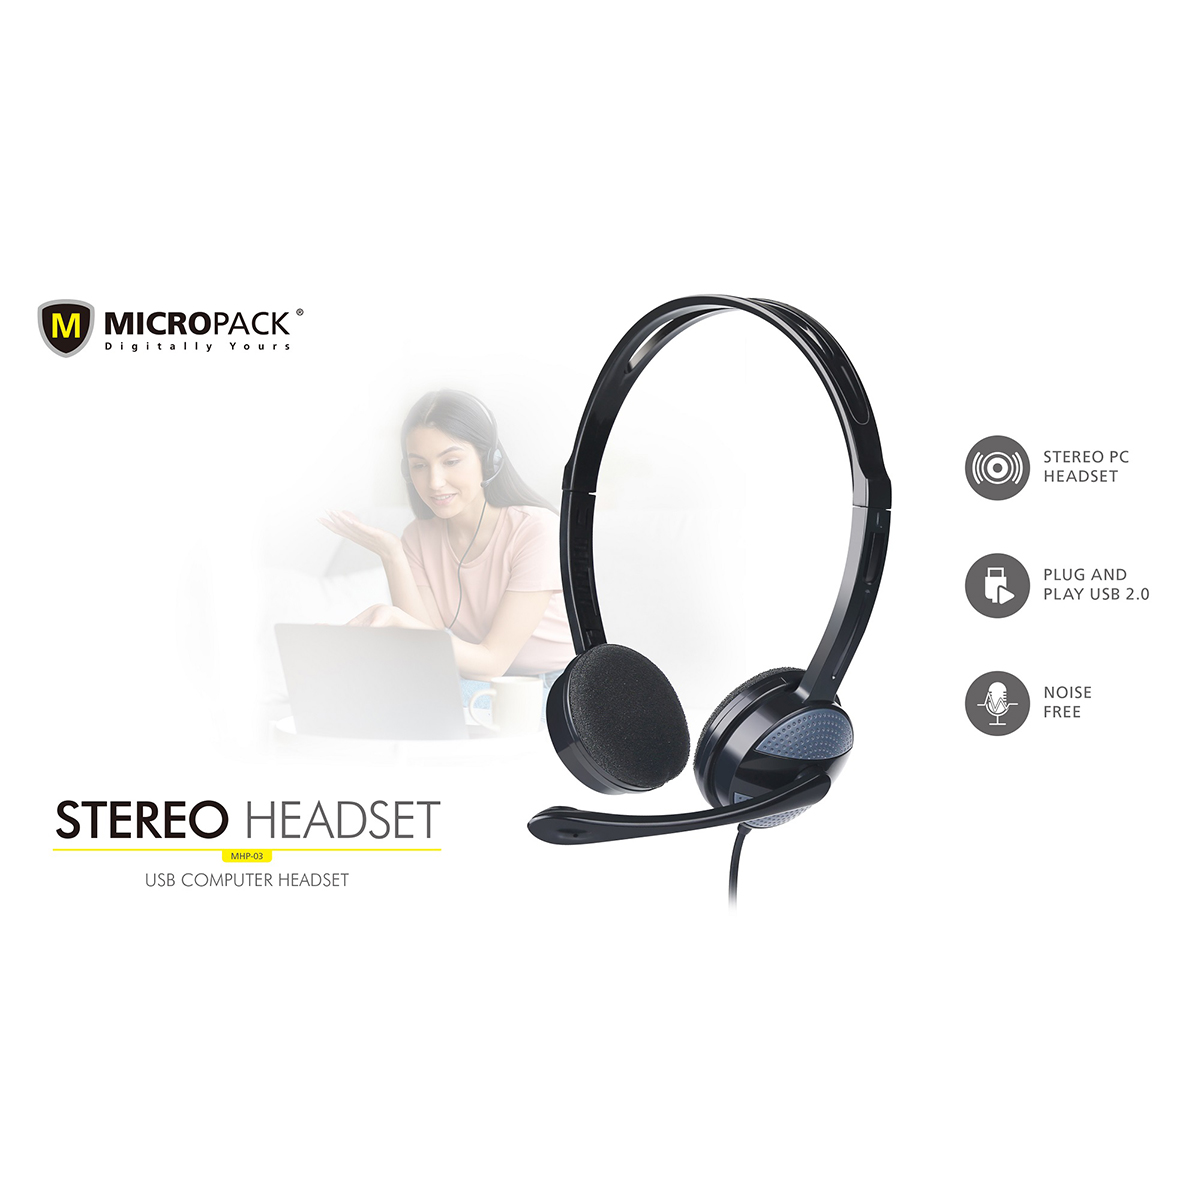 """Brand - Micropack, Model - Micropack MHP-03, Type - USB Headset, Connectivity - Wired, Color - Black, Part No - MHP-03, Warranty - 1 Year, Country of Origin - China, Made in/ Assemble - China """"Keyword"""" """"micropack headphone price in bd"""" """"micropack mhp-600"""" """"pioneer headphones price in bangladesh"""" """"edifier w280bt price in bd"""" """"prolink wire phe 1001e price in bangladesh"""" """"edifier k800 headphone price in bangladesh"""" """"micropack bangladesh"""" """"micropack headphone"""" """"micropack wireless mouse"""" """"micropack g850"""" """"micropack power bank"""" """"micropack km-218w"""""""